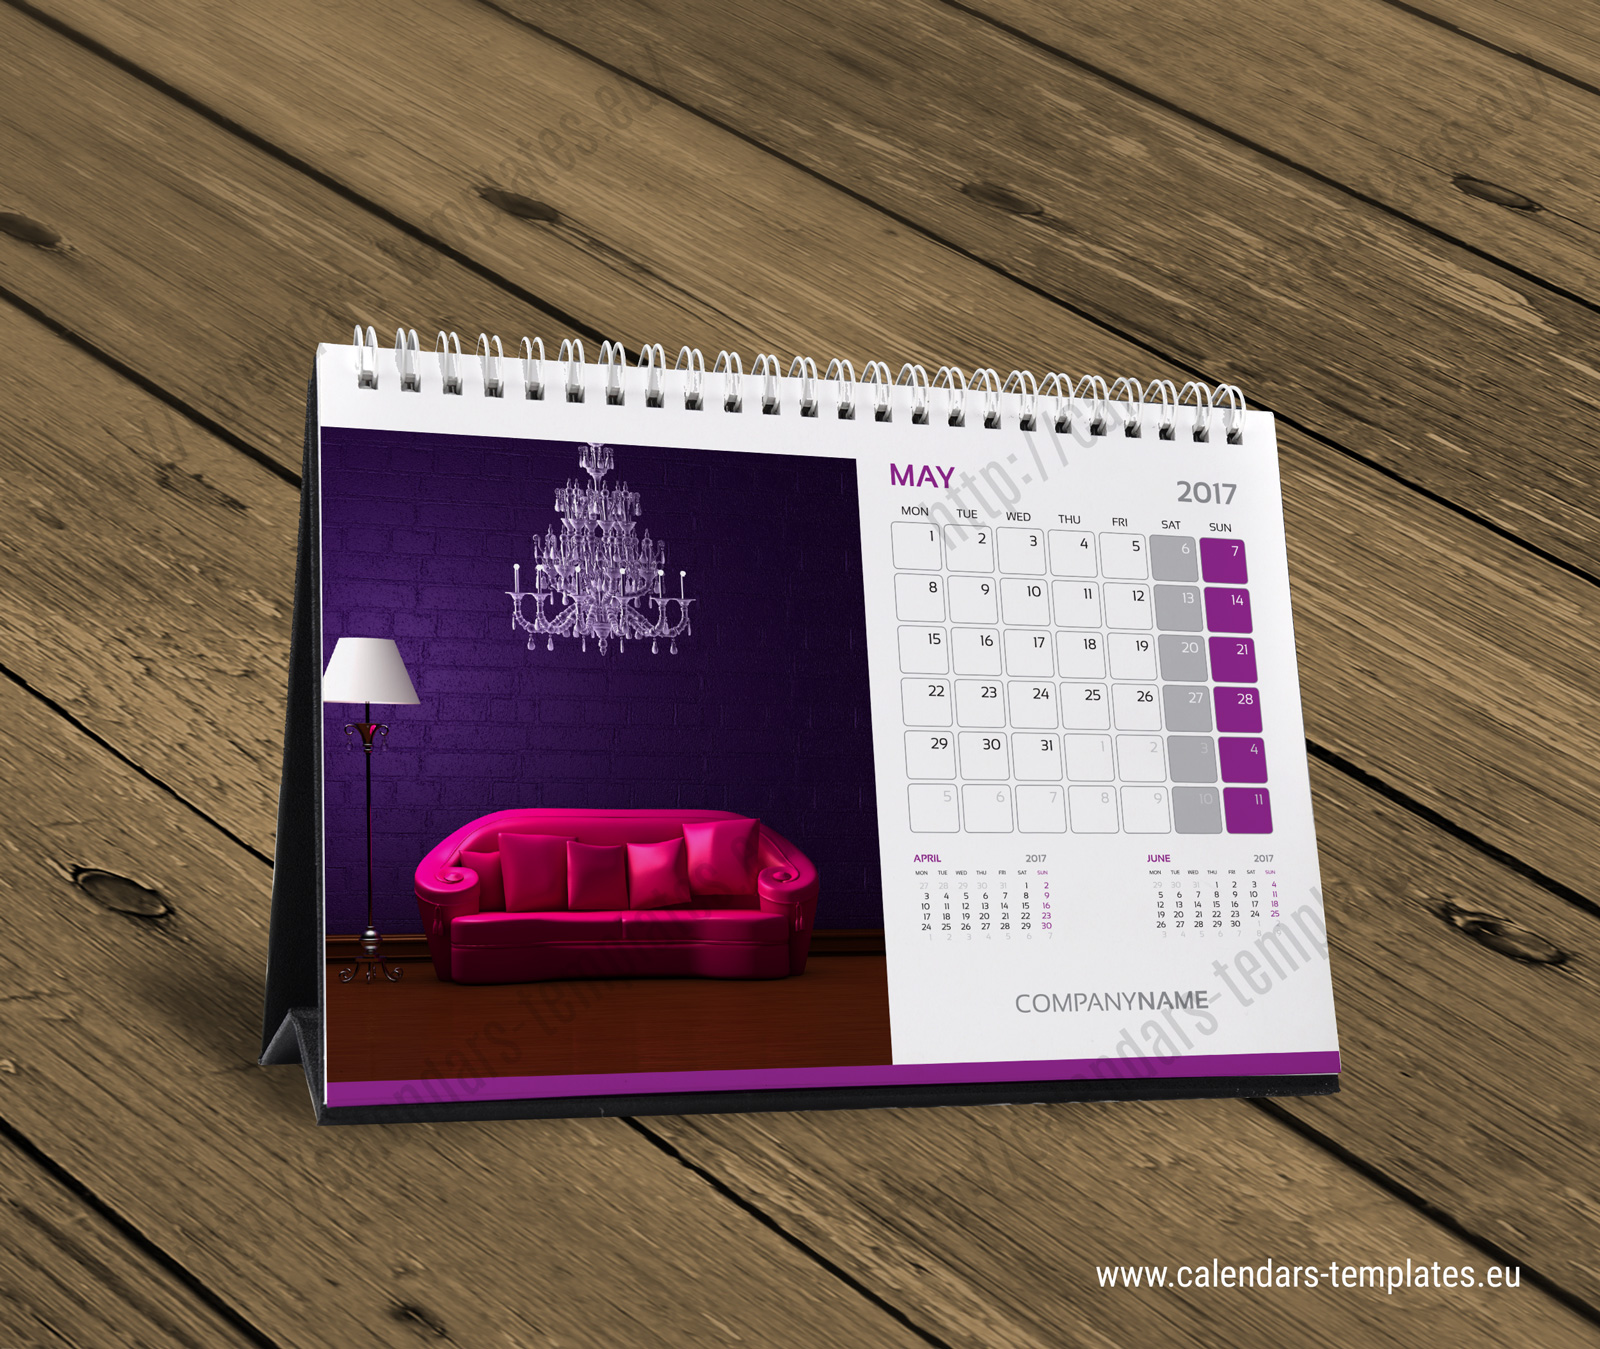 Desk calendar kb10 w5 template calendar template for Table design 2016